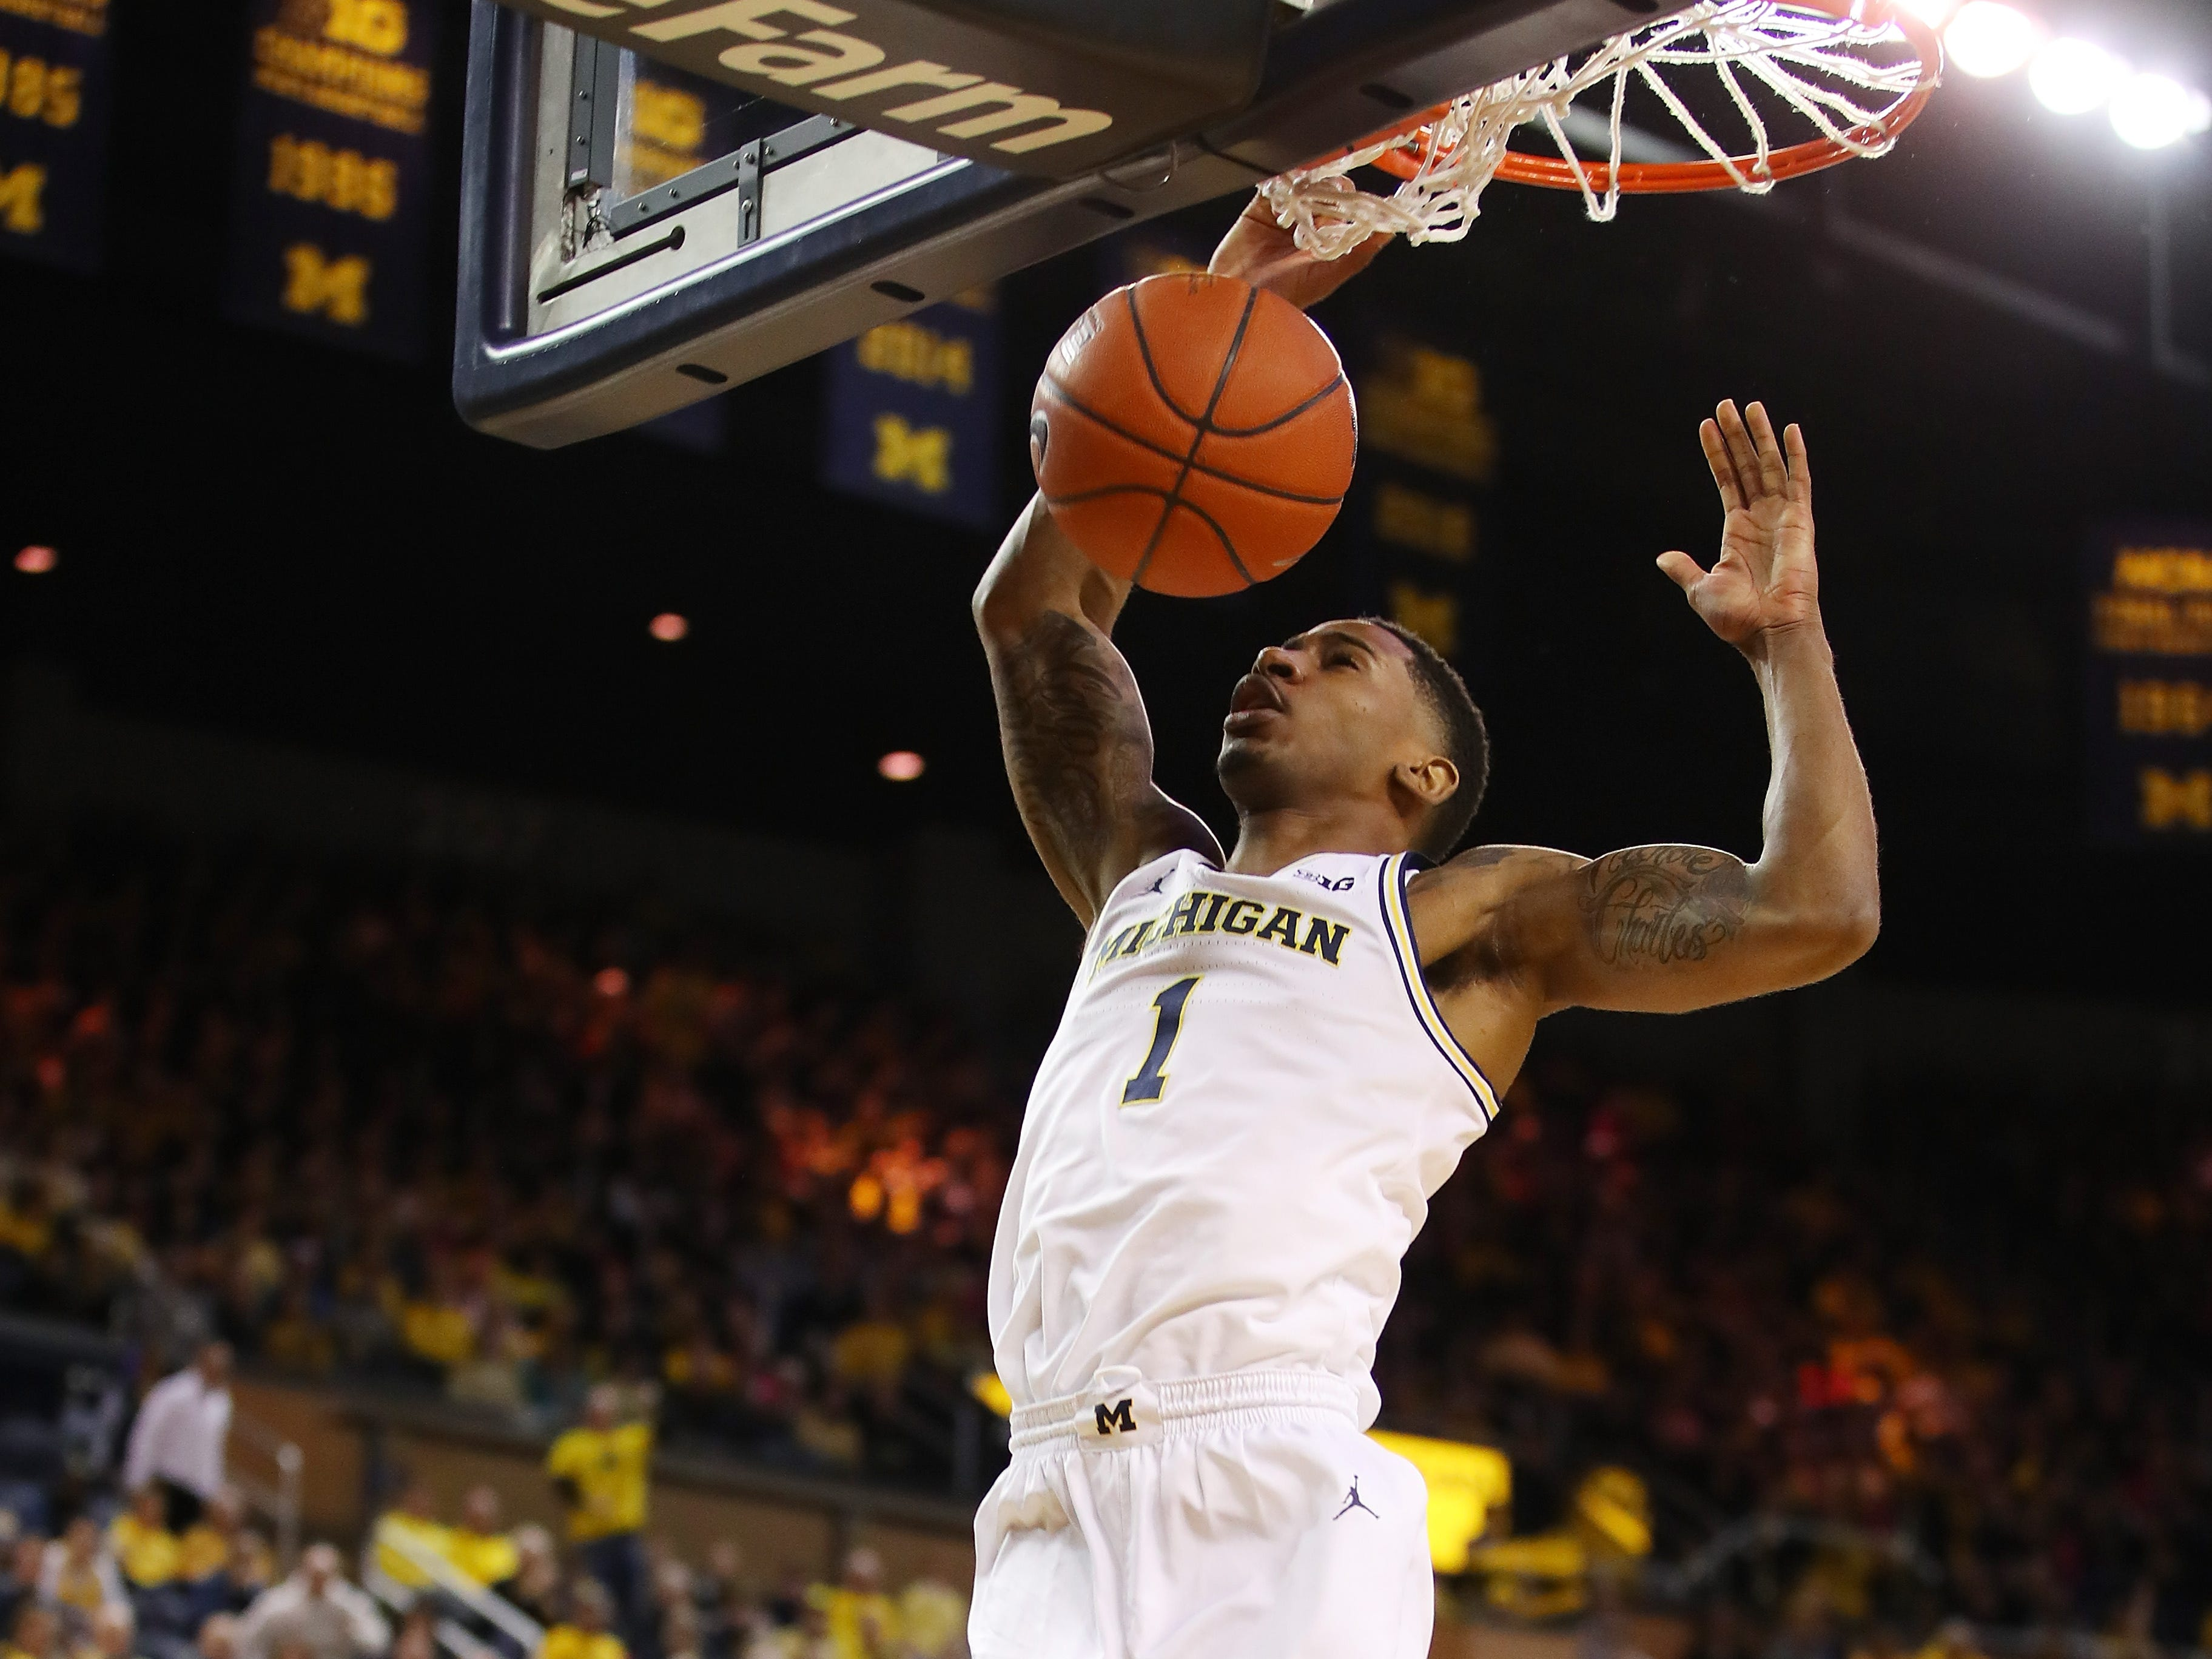 Michigan's Charles Matthews dunks against Maryland in the first half at Crisler Center on Feb. 16, 2019 in Ann Arbor.